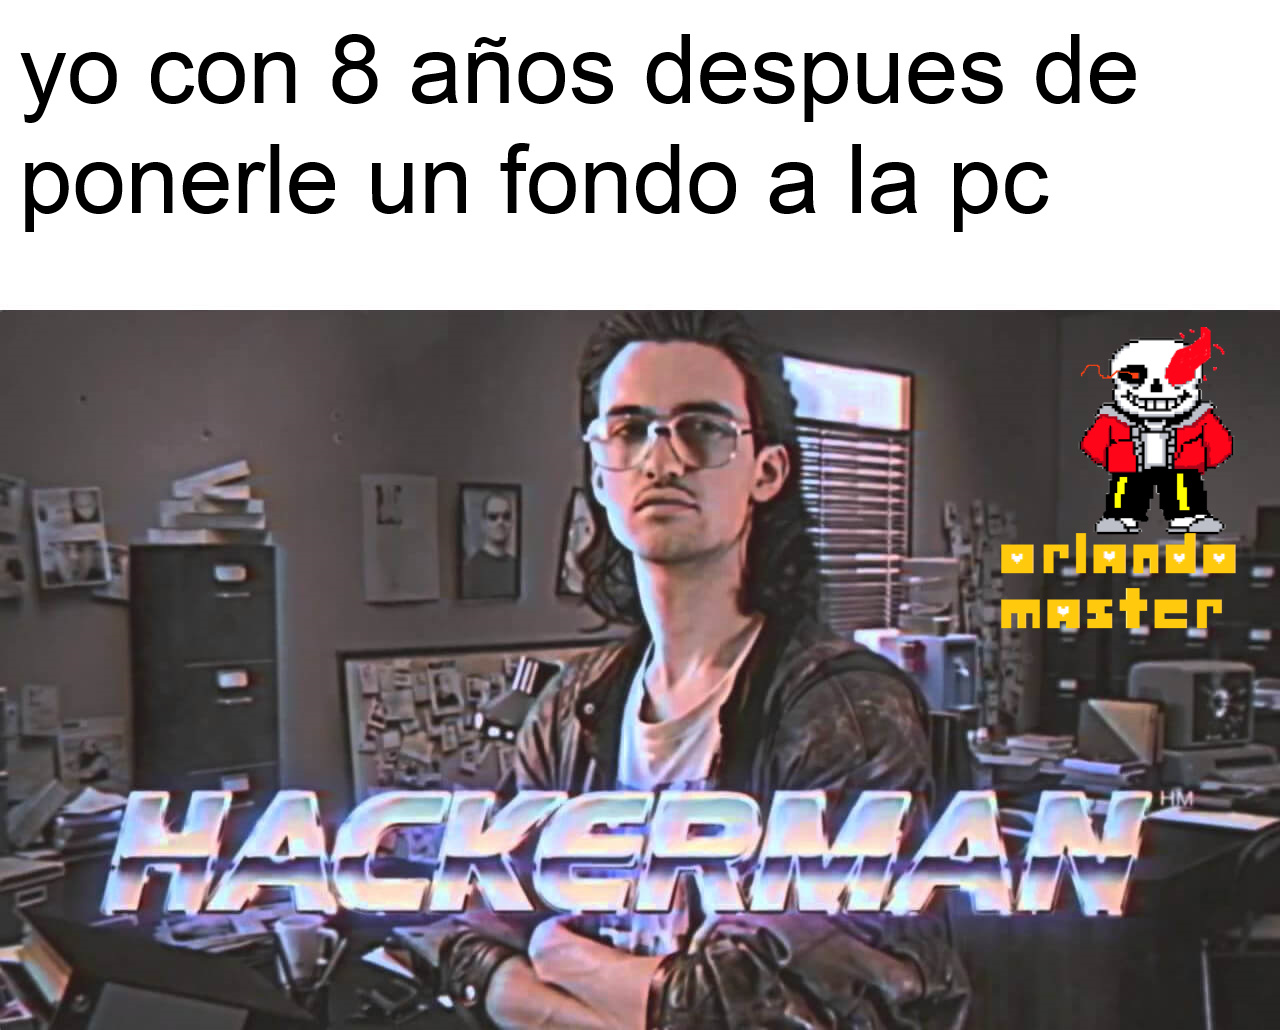 re capo el hacker - meme